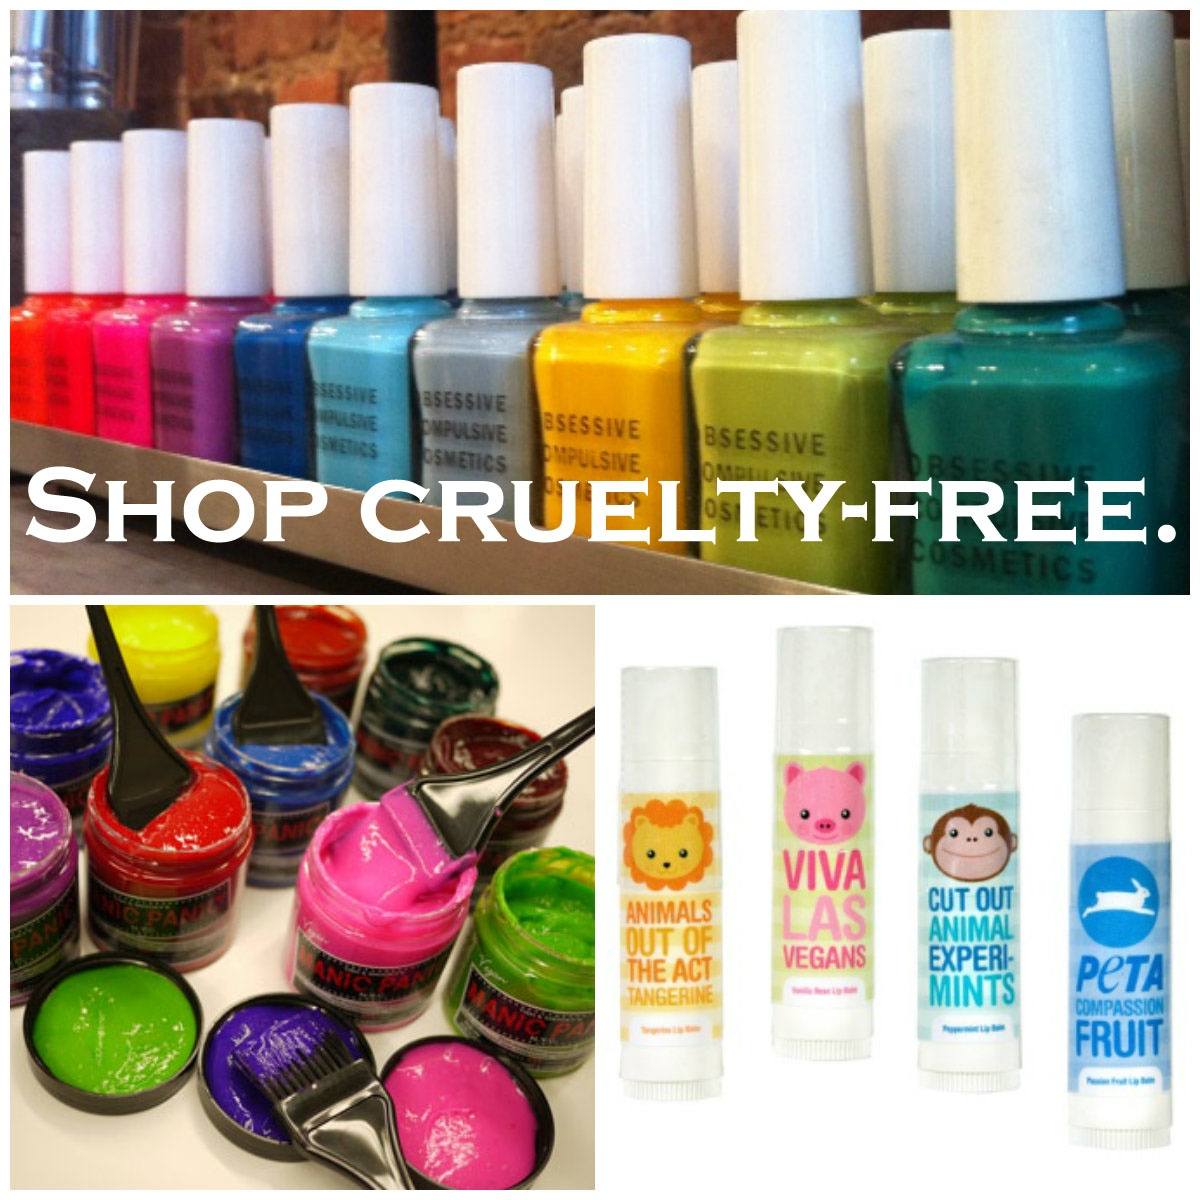 cruelty-free-collage-text